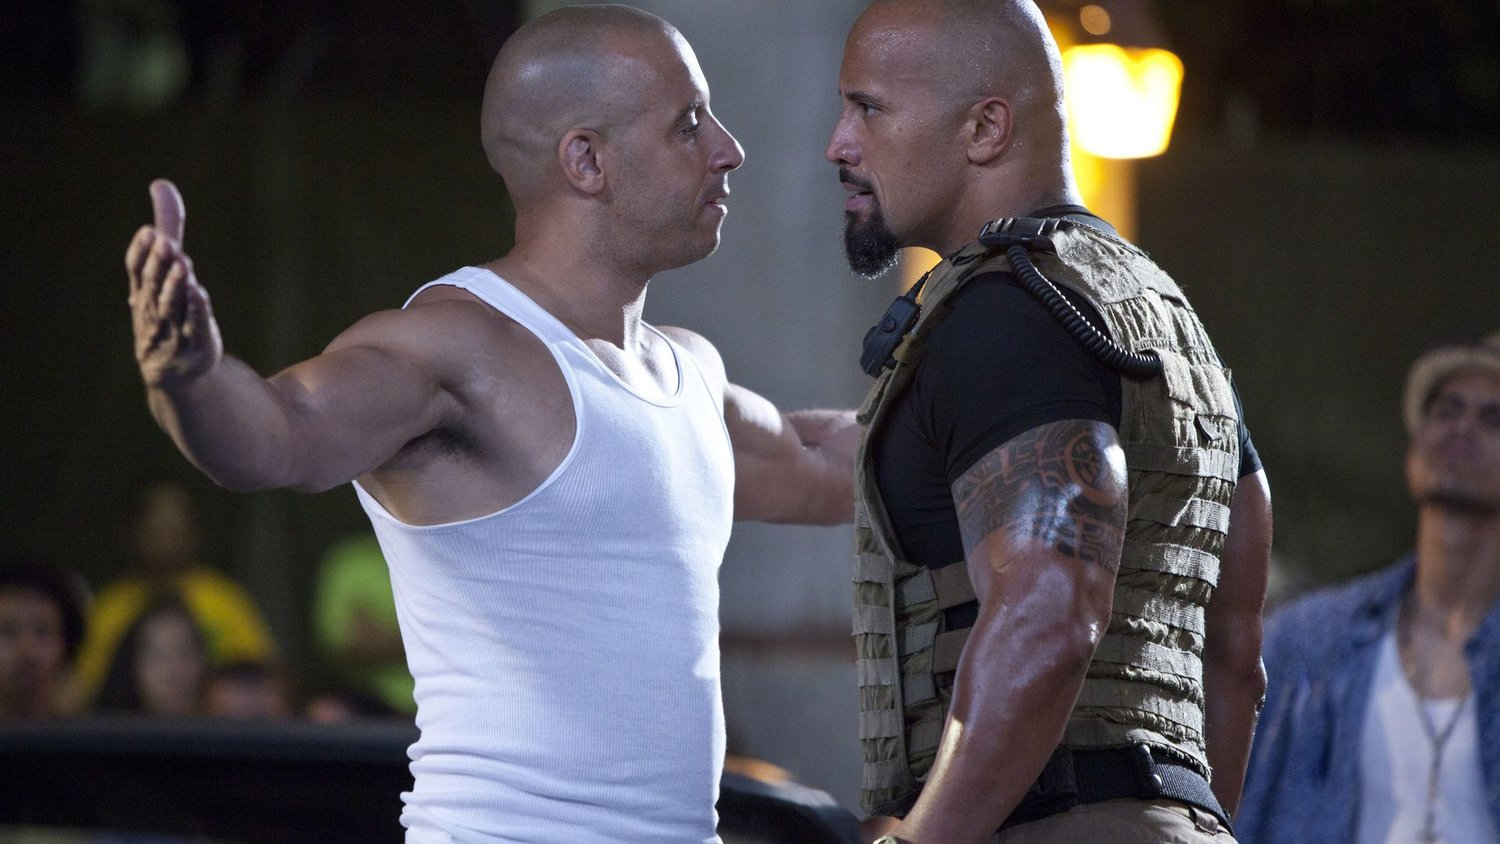 The Rock And Vin Diesel Have Reportedly Squashed Their Beef